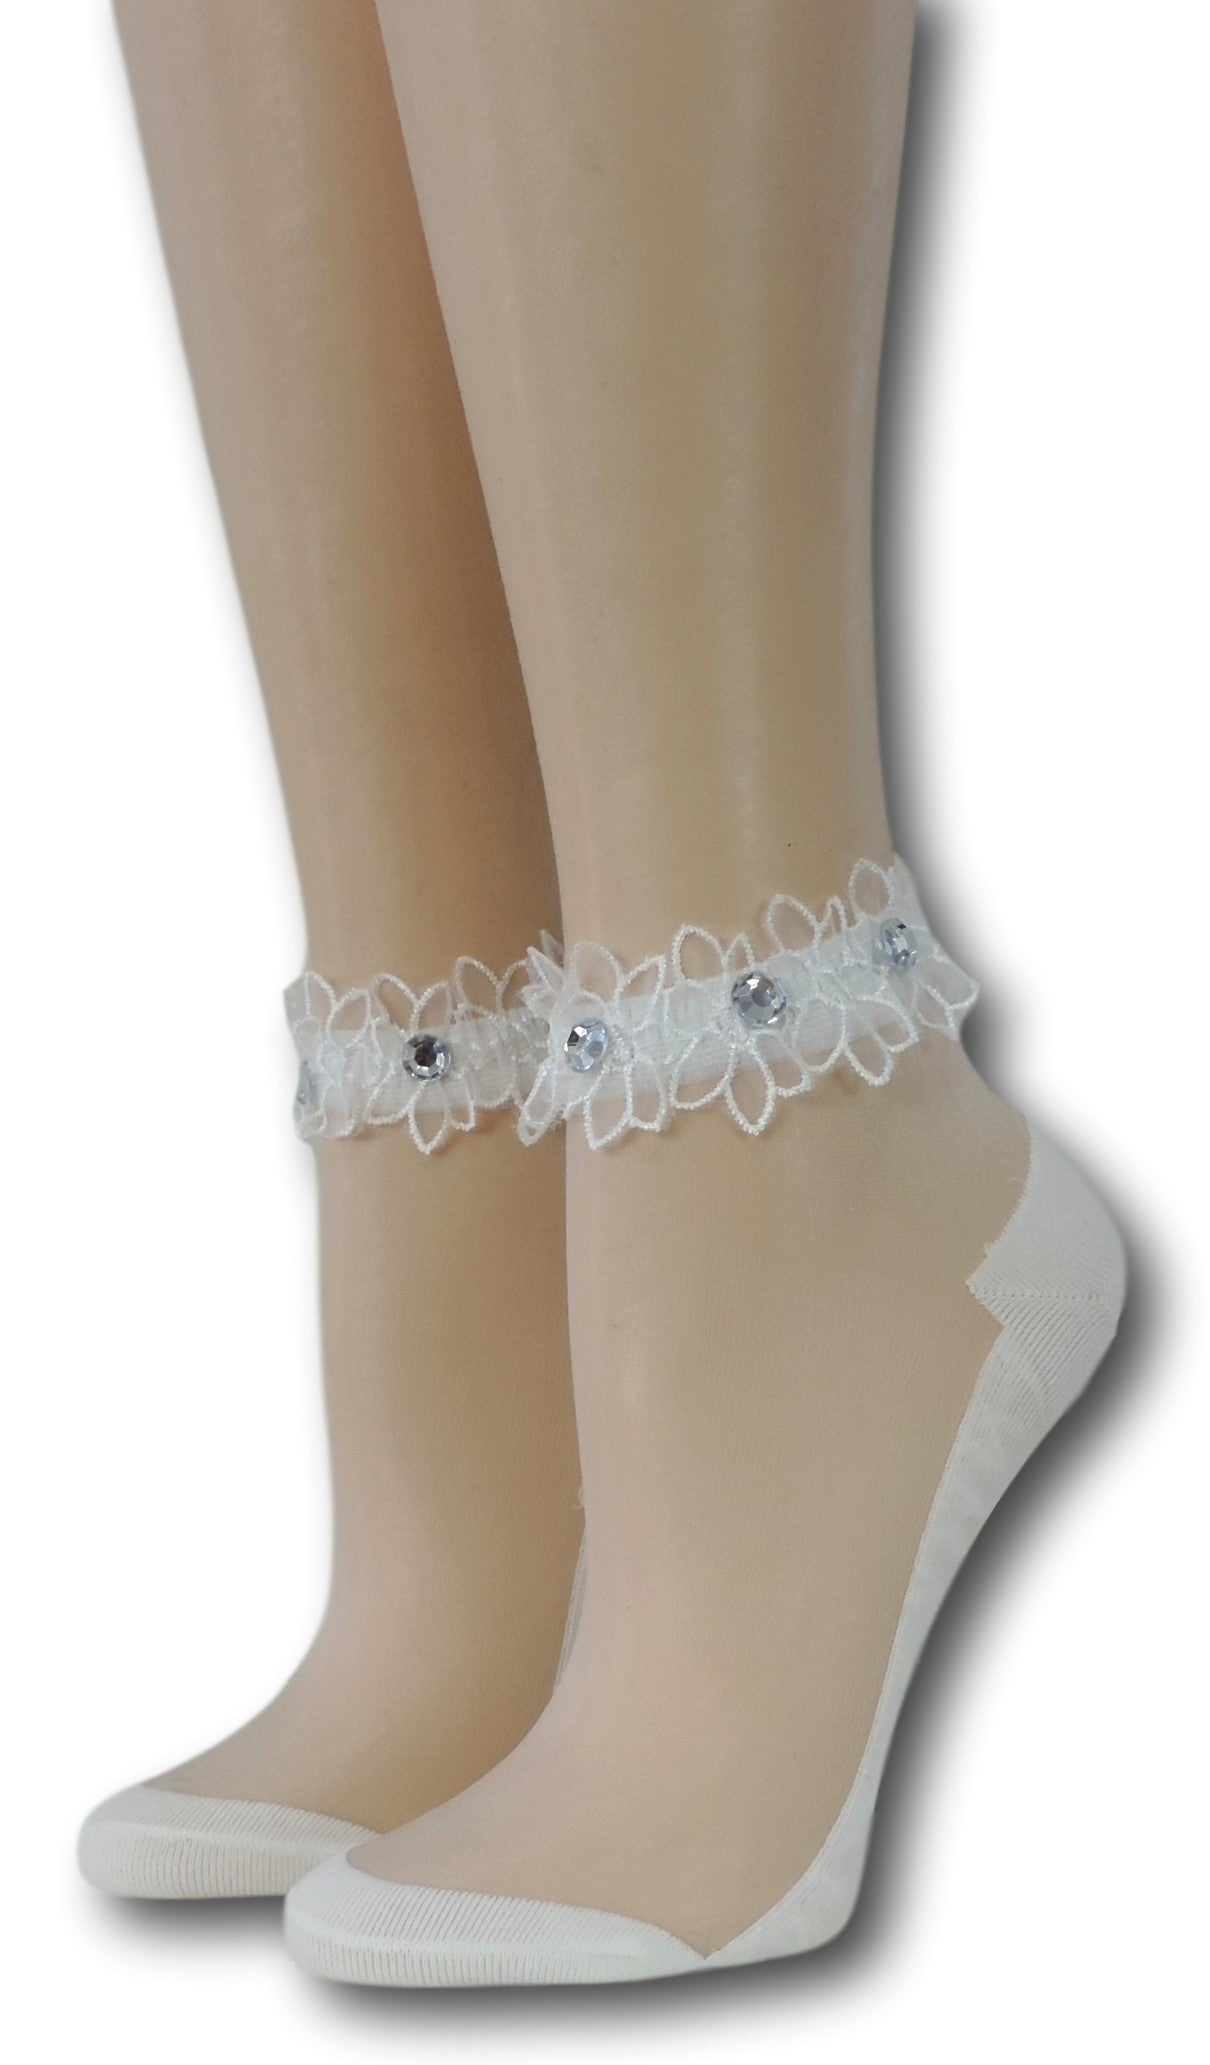 Bright White Ankle Sheer Socks with beads